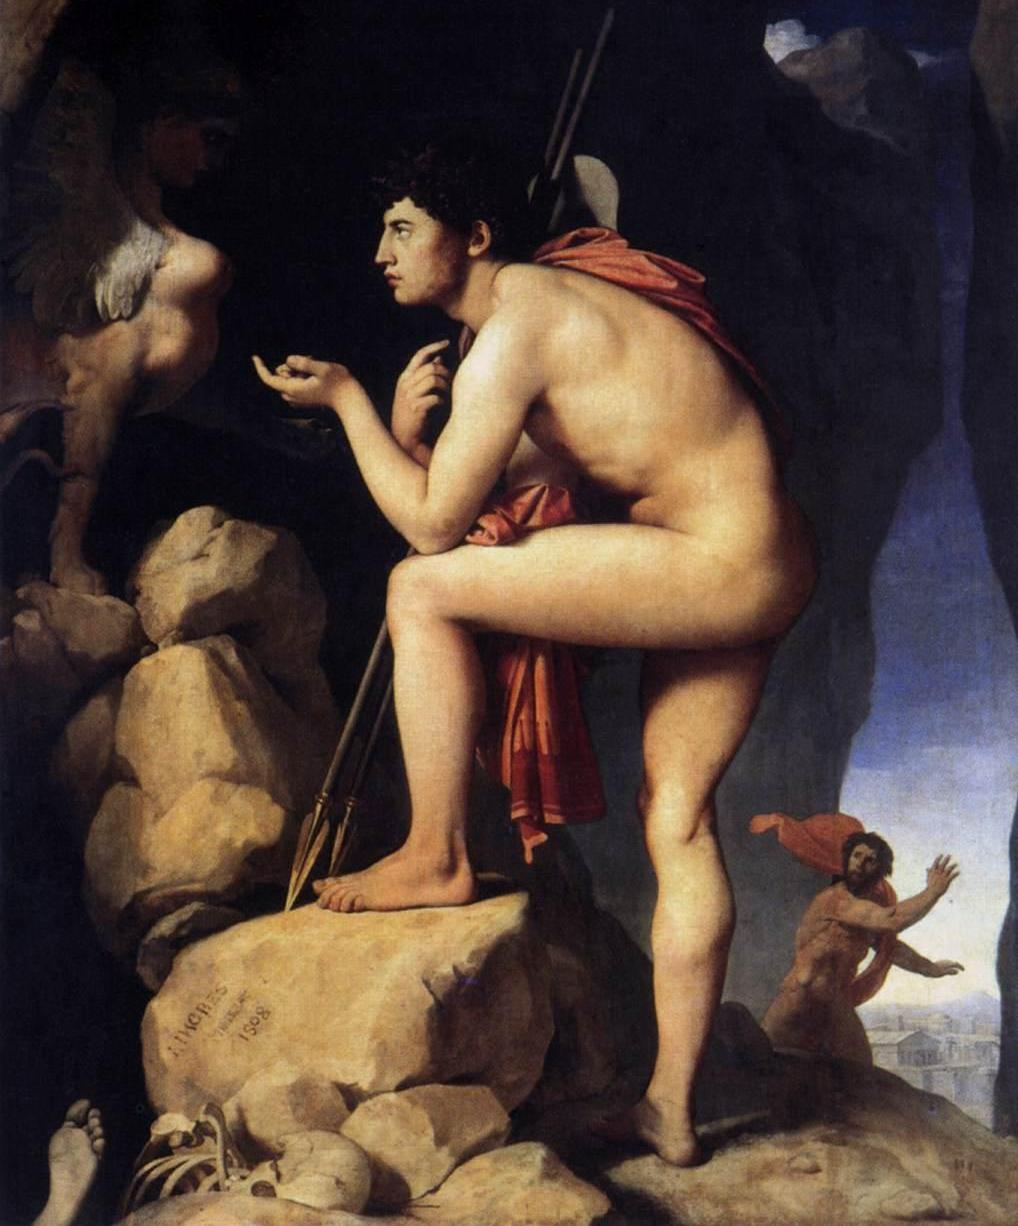 jean_auguste_dominique_ingres_-_oedipus_and_the_sphynx_-_wga11843-14220C70D6636122C9D